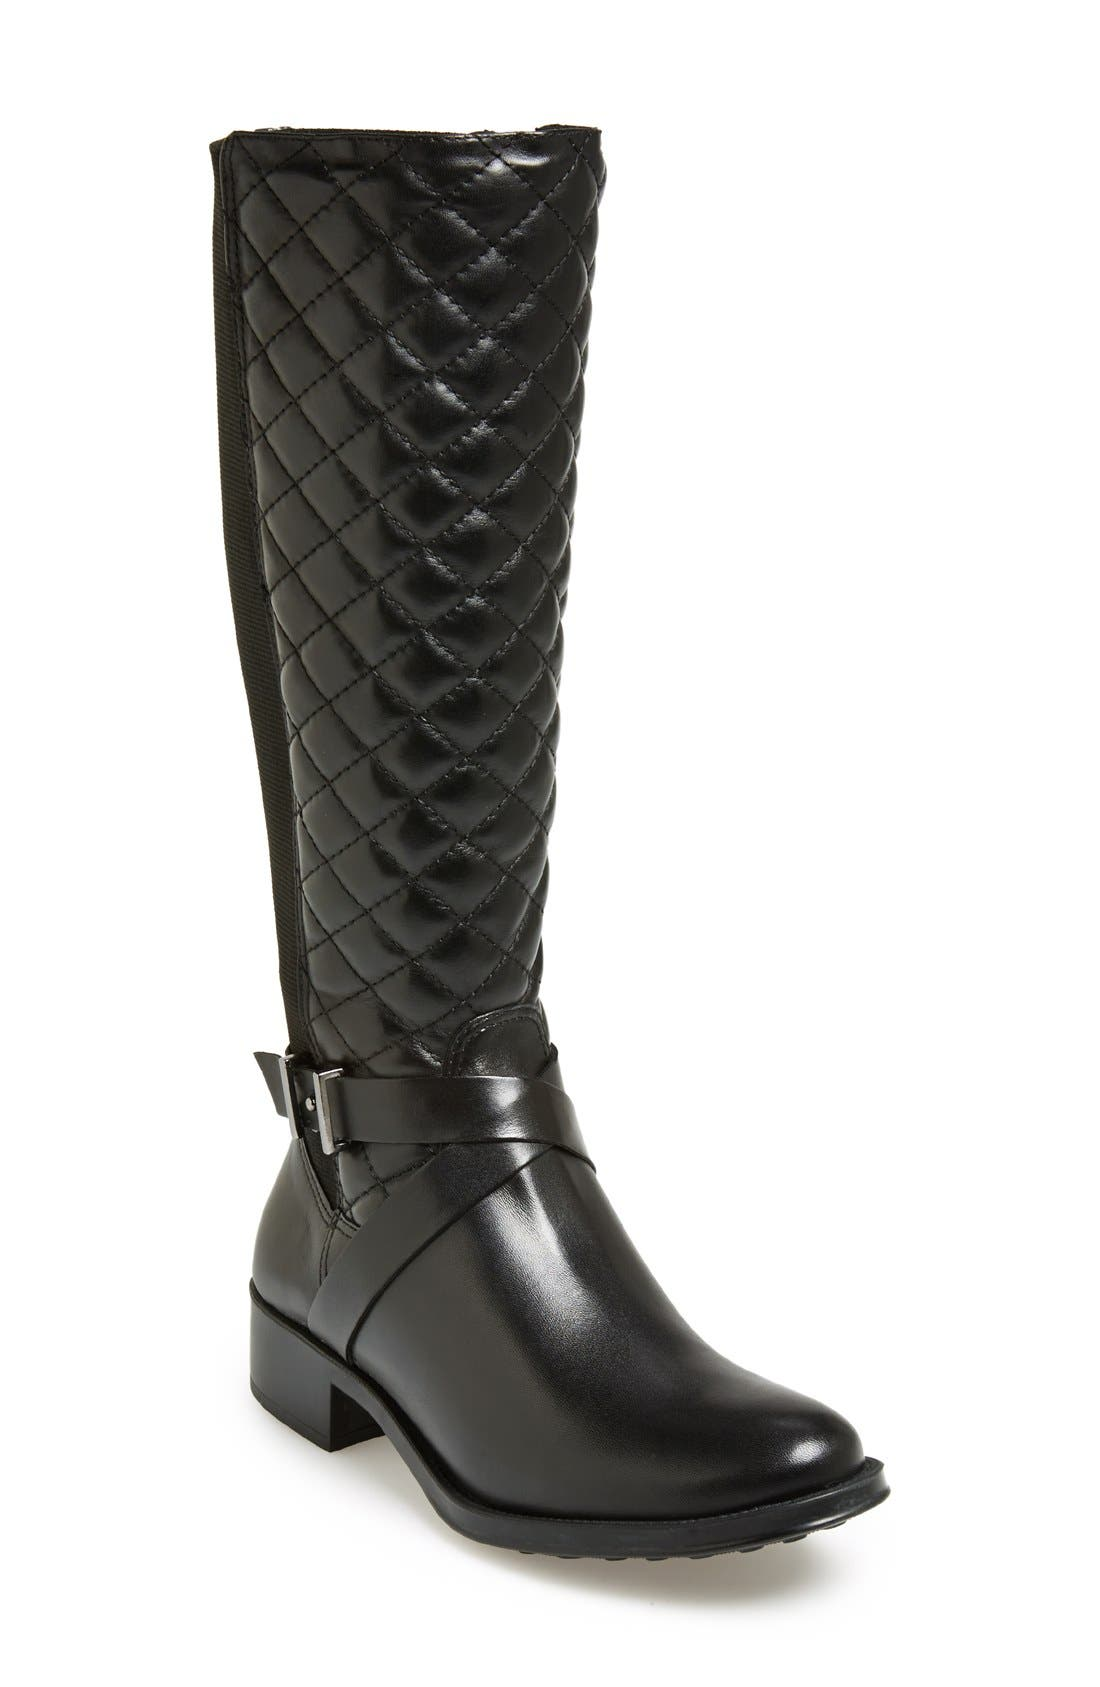 Alternate Image 1 Selected - André Assous 'Seabiscuit' Waterproof Quilted Boot (Women)